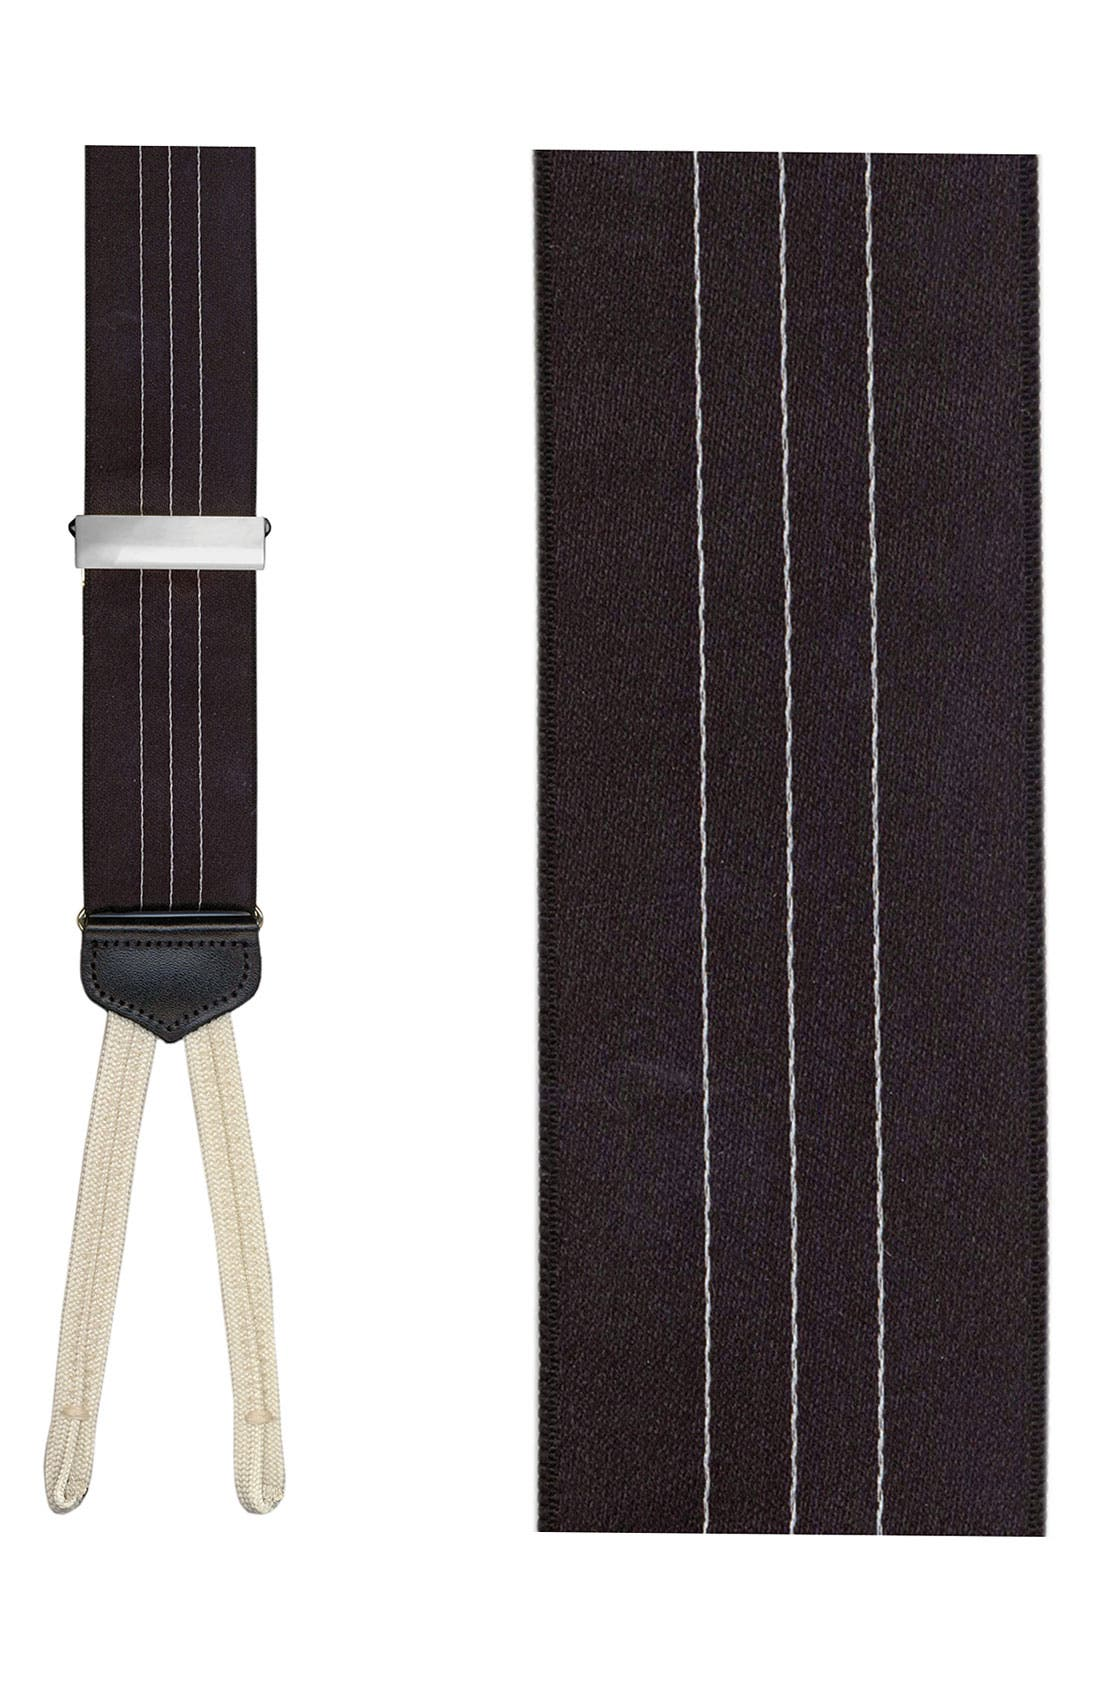 Main Image - Trafalgar 'Formal Ascot' Satin Suspenders